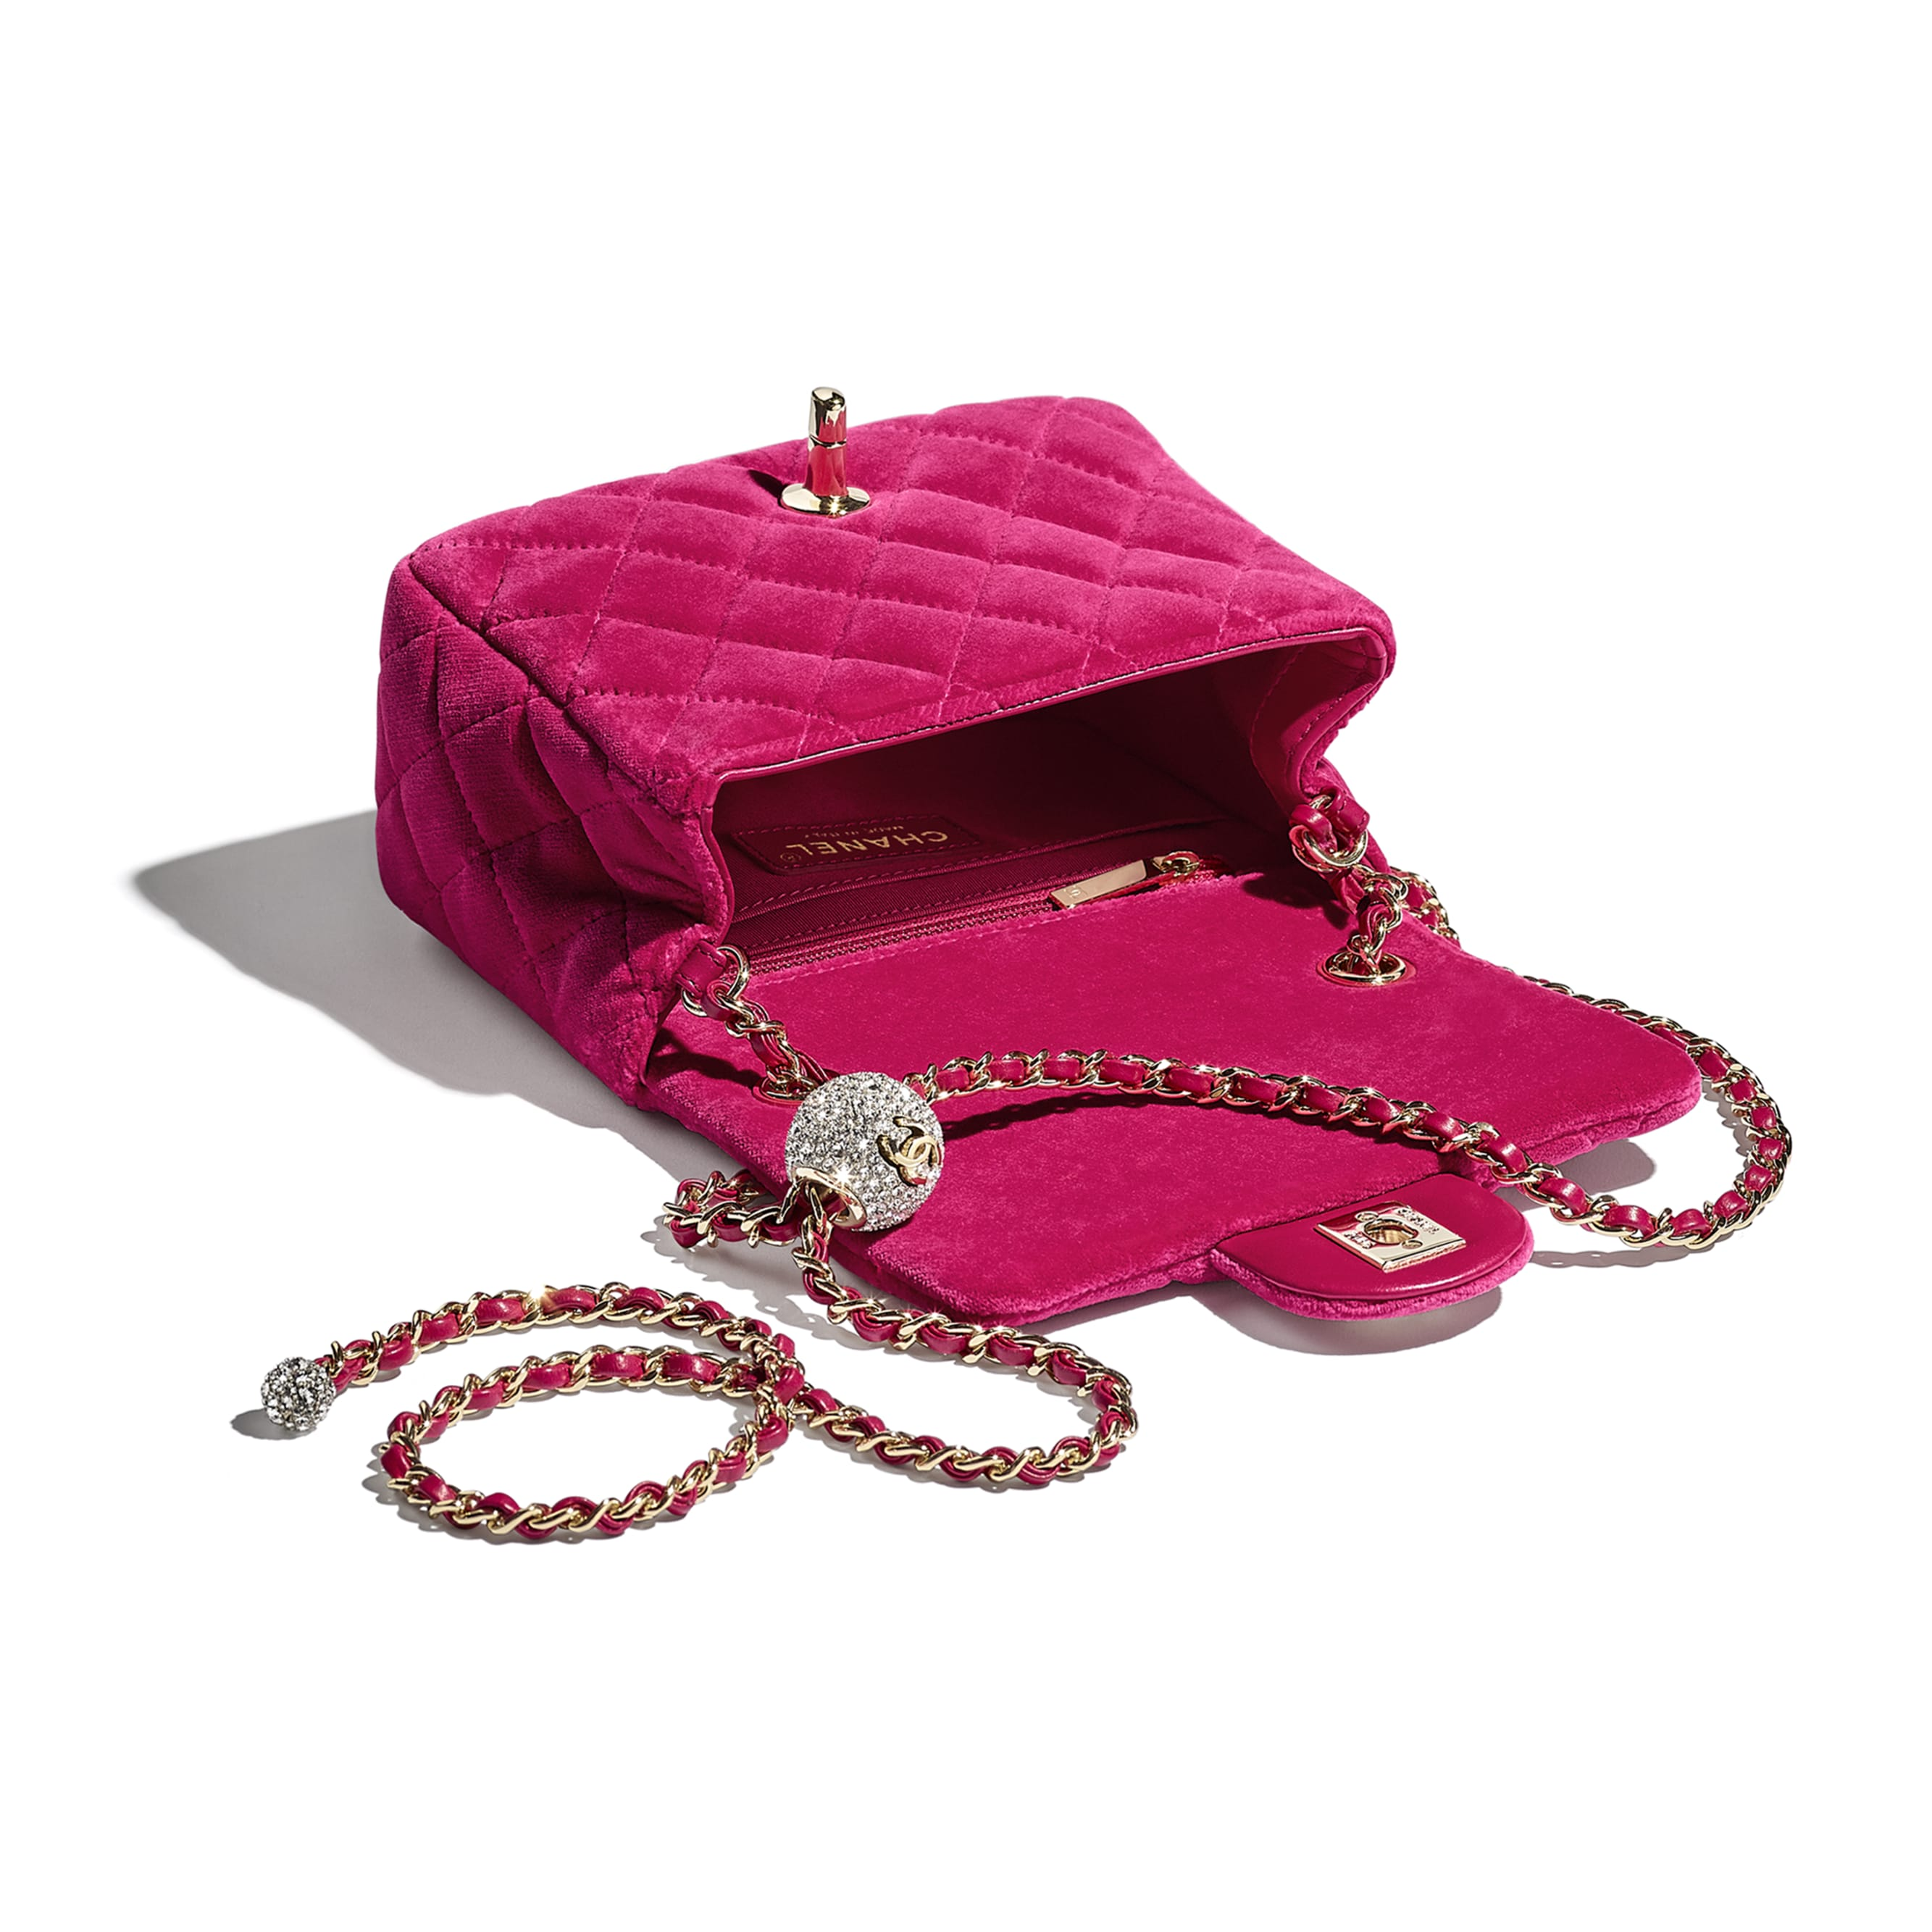 Flap Bag - Fuchsia - Velvet, Diamanté & Silver-Tone Metal - CHANEL - Other view - see standard sized version